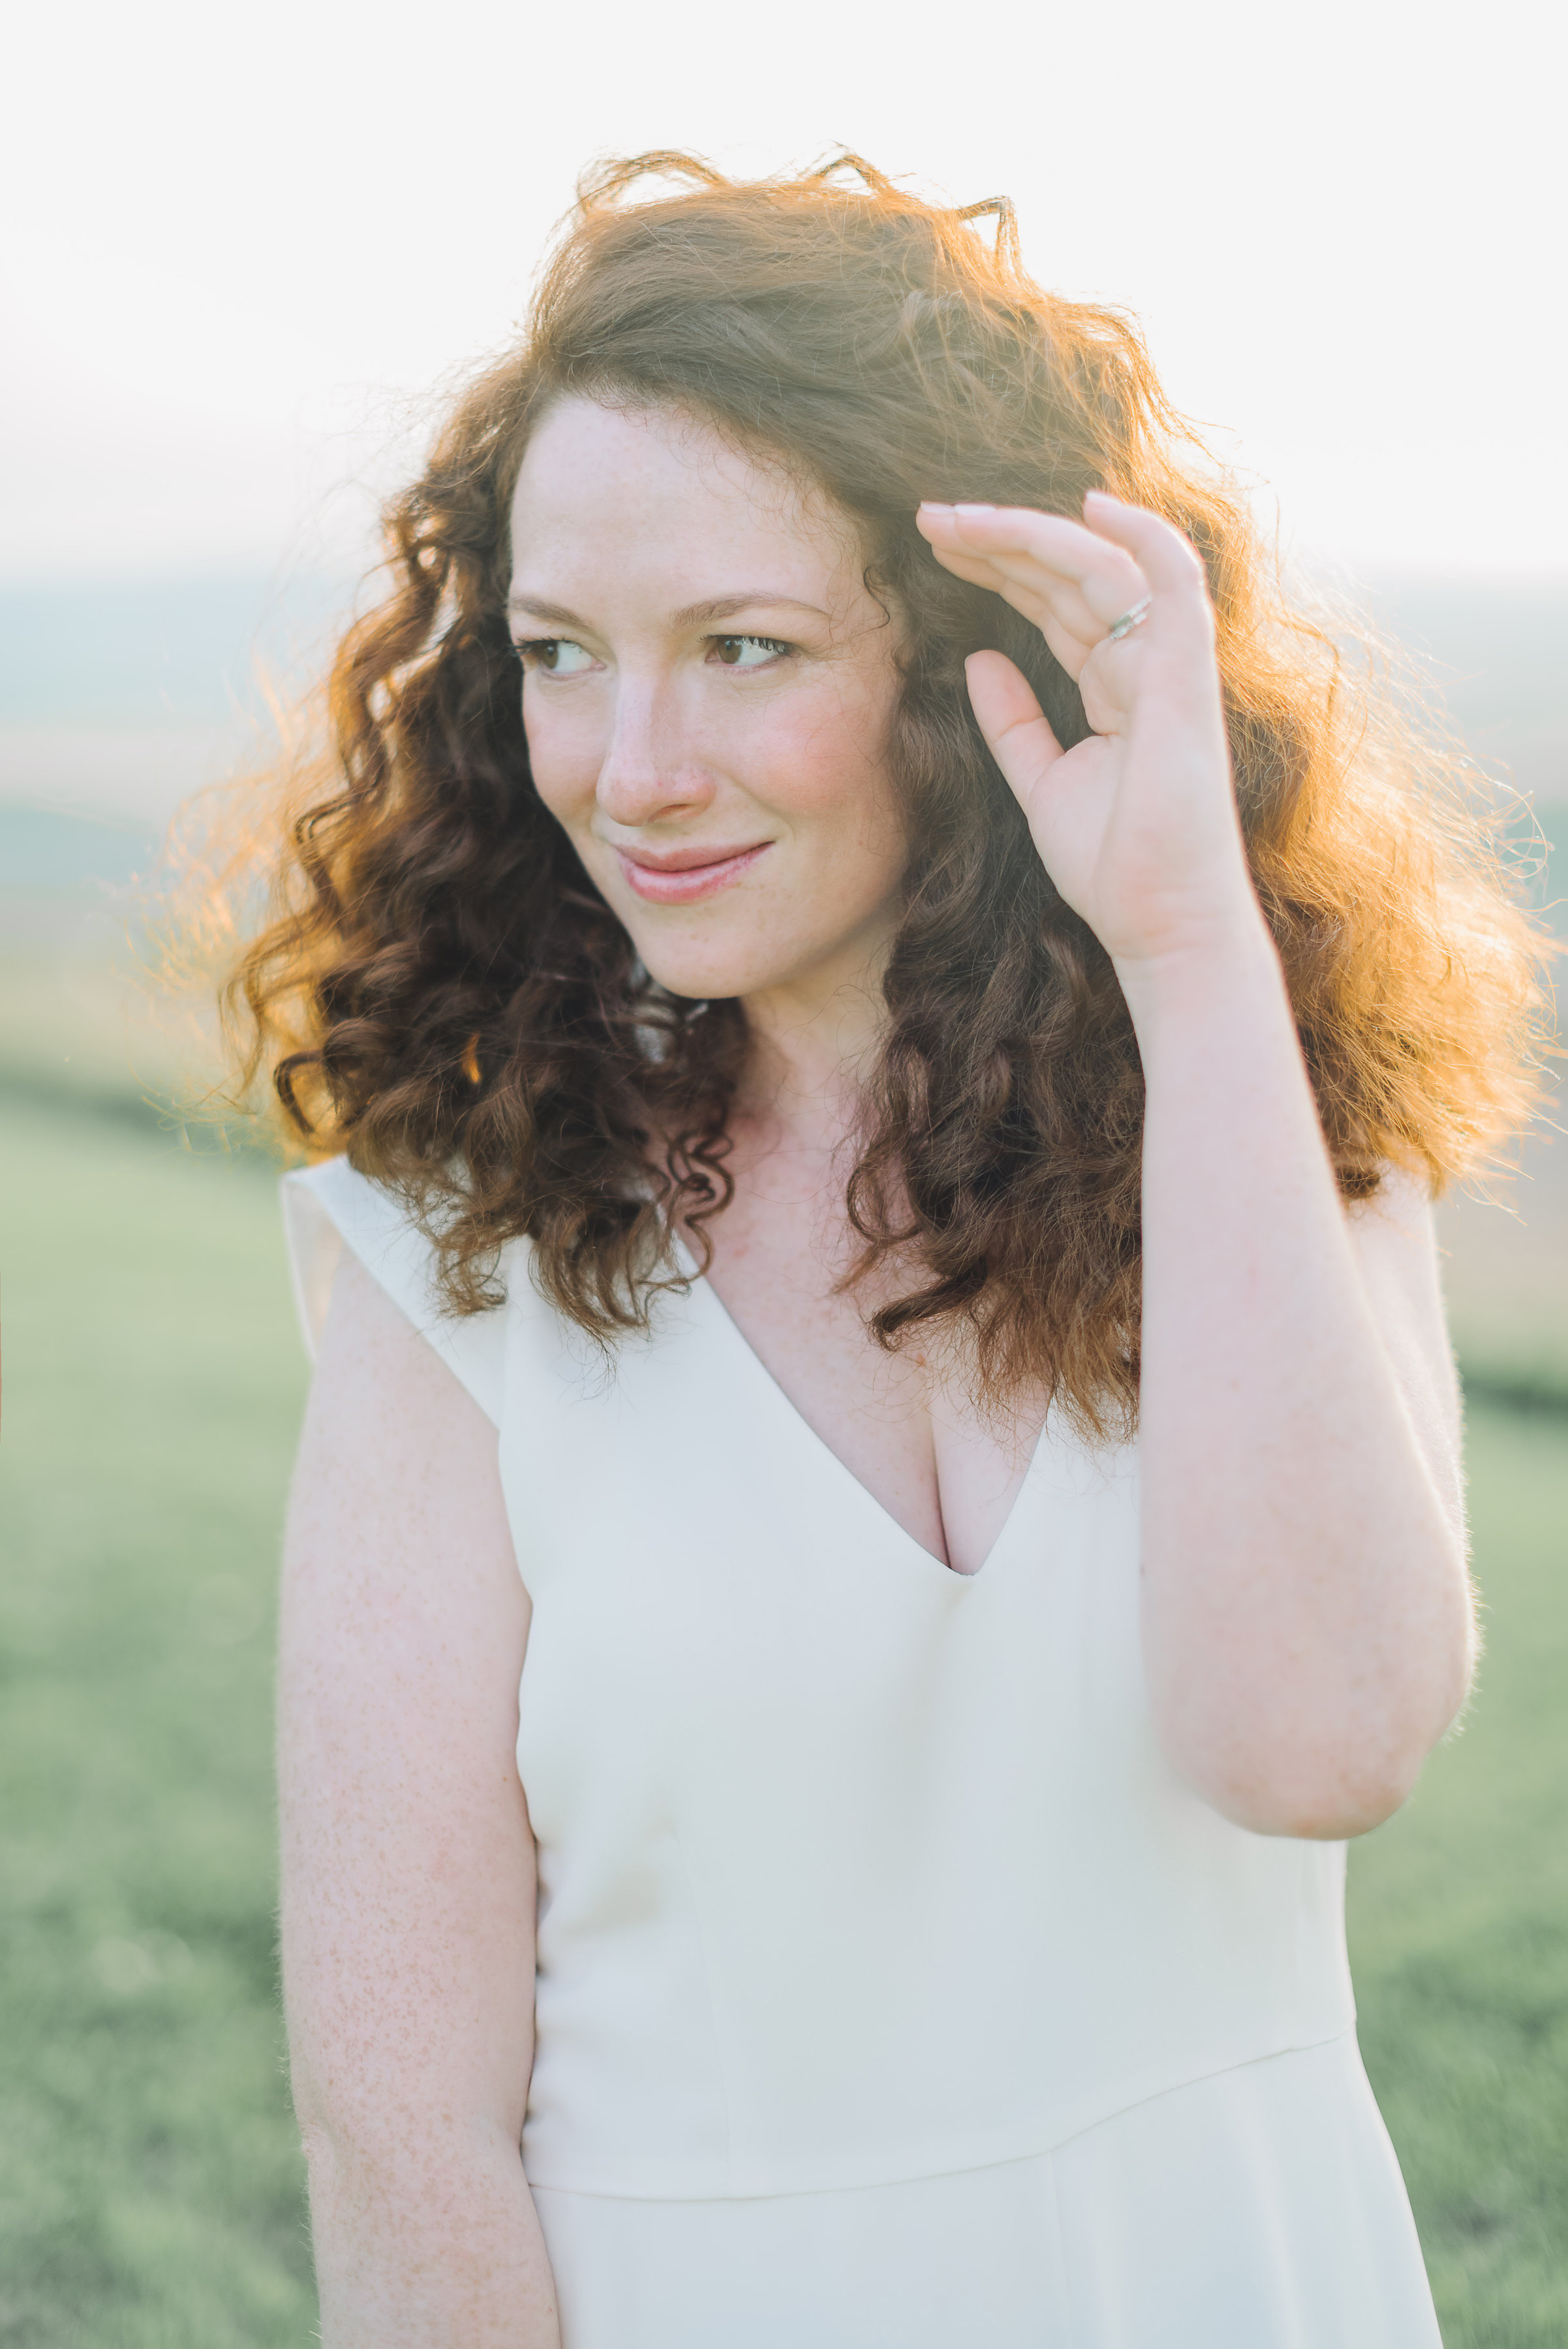 Natural and organic wedding hairstyle for a redhead bride with curls